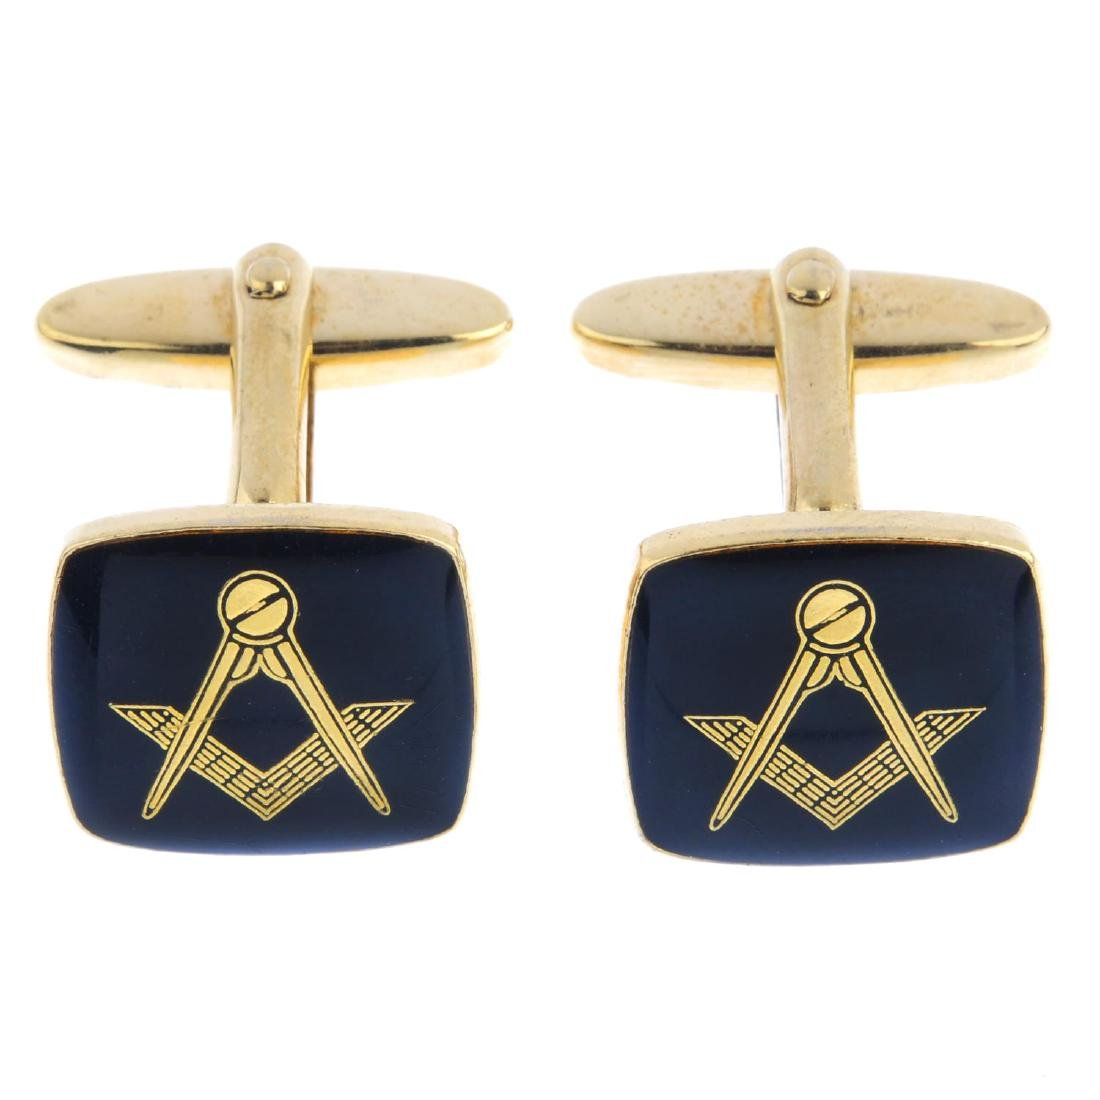 A Masonic ball pendant and a pair of Masonic cufflinks.